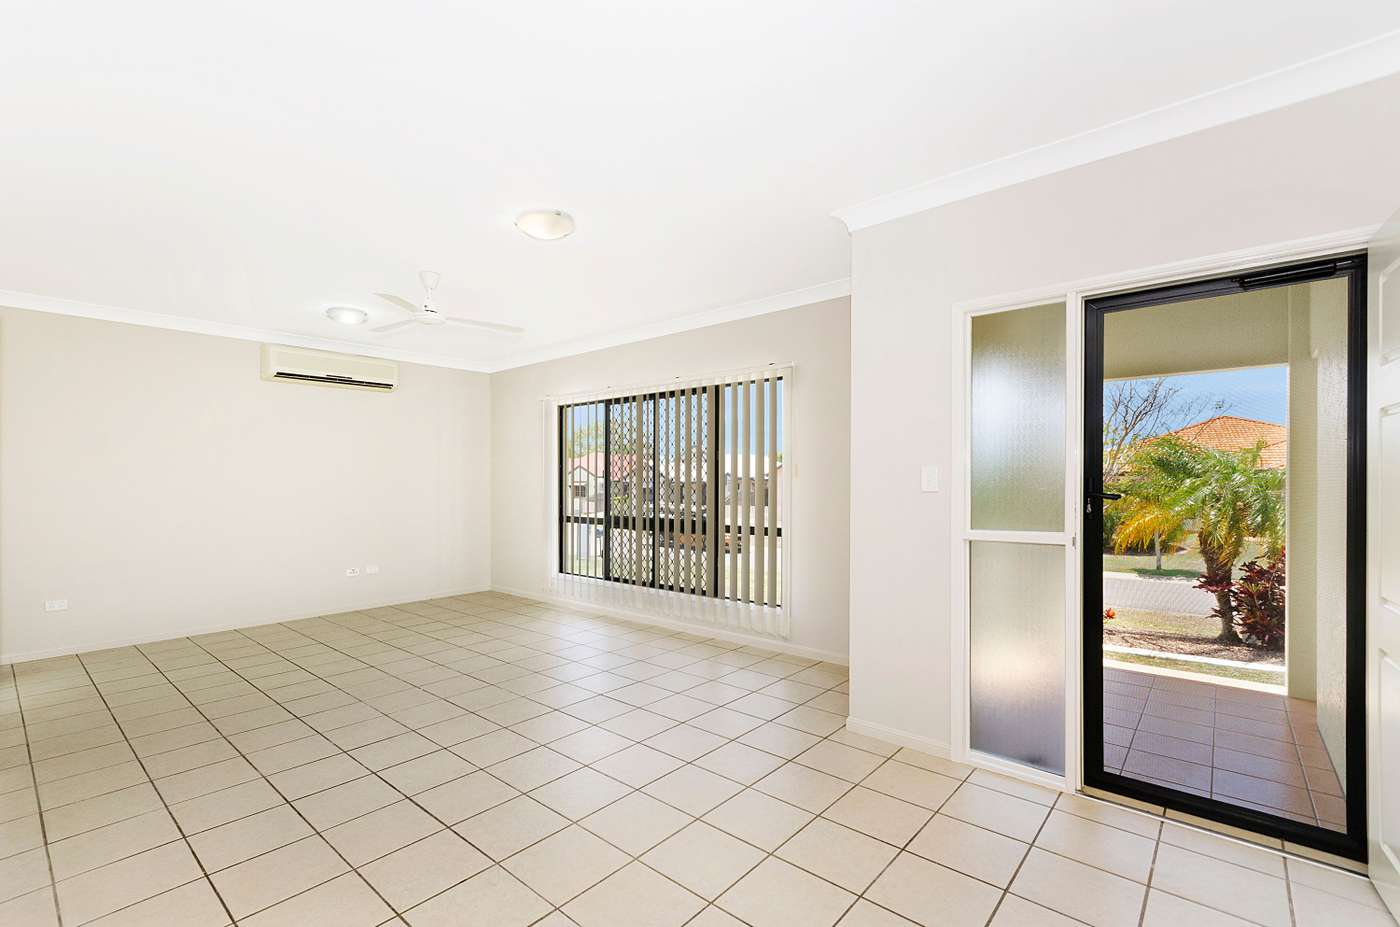 Main view of Homely house listing, 13 Birdwing Court, Douglas, QLD 4814